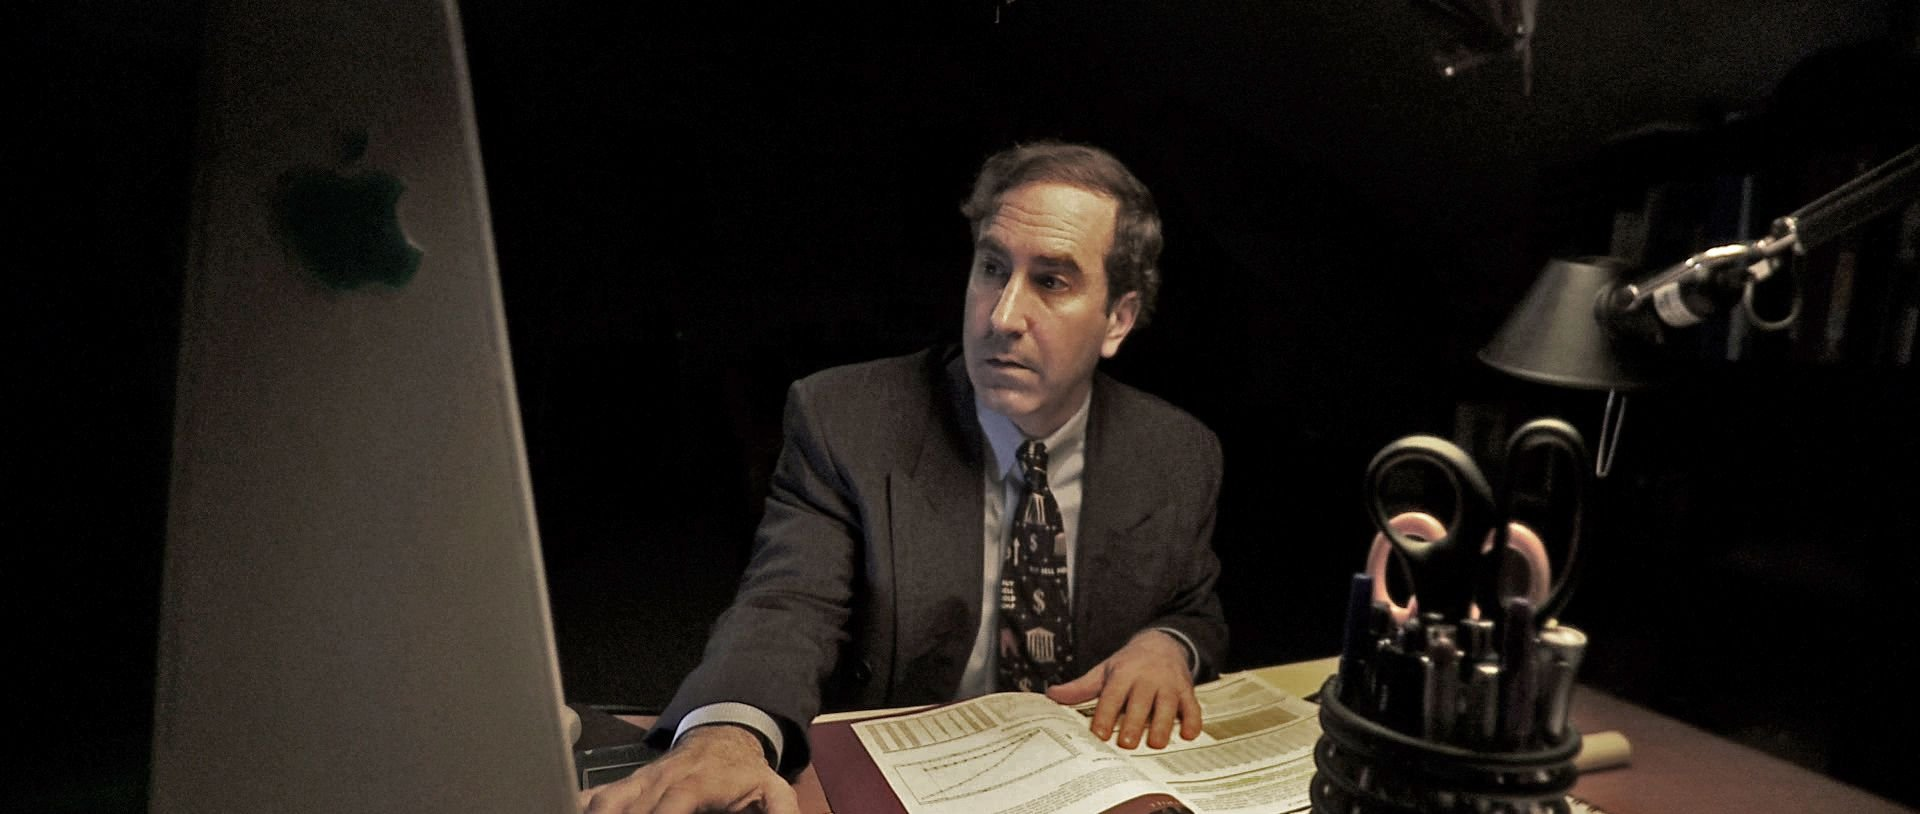 An image from Chasing Madoff